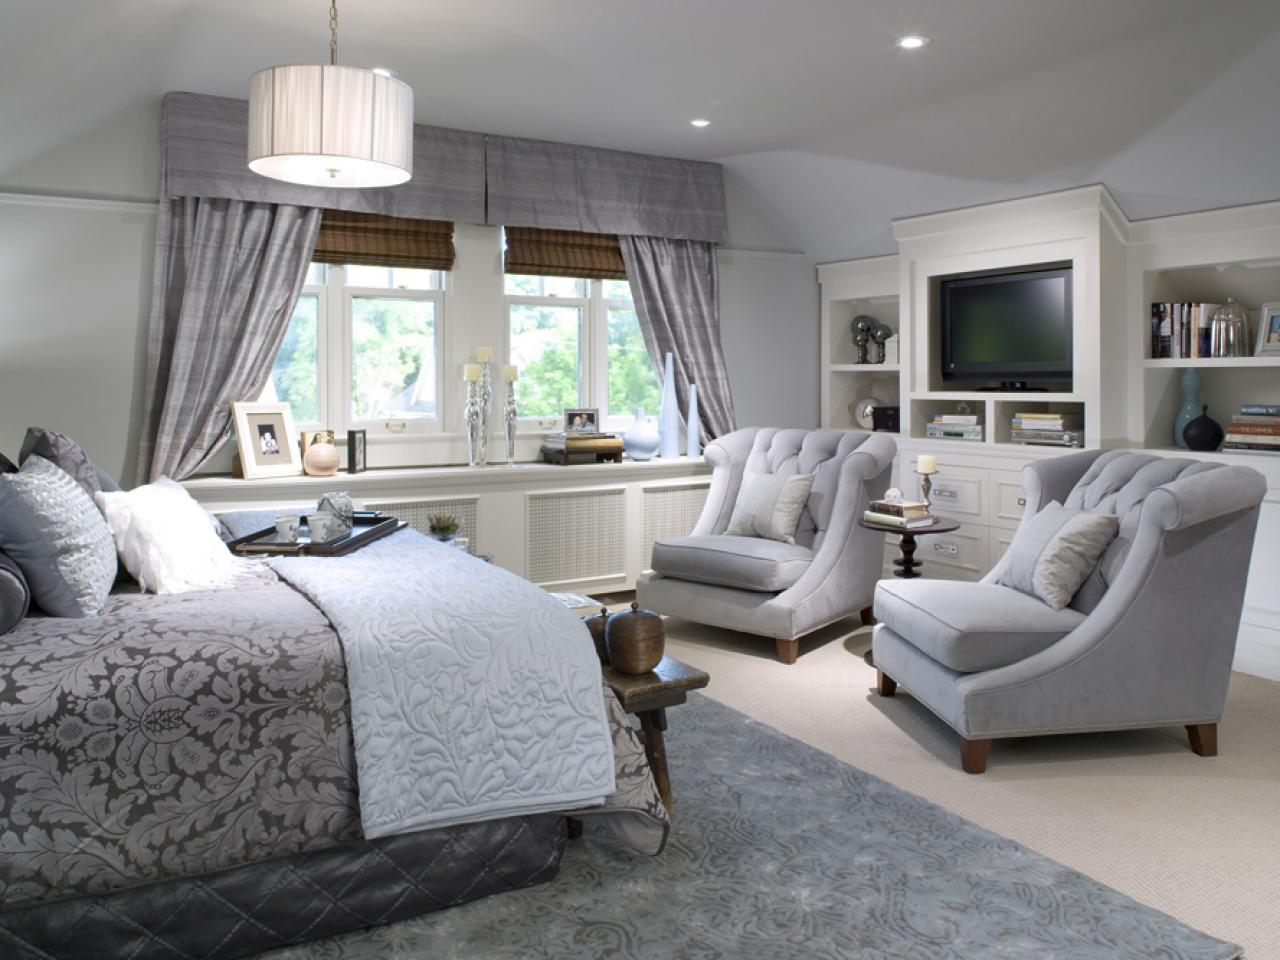 Comfortable Chairs for Bedroom Sitting Area - HomesFeed on Comfy Bedroom  id=97972